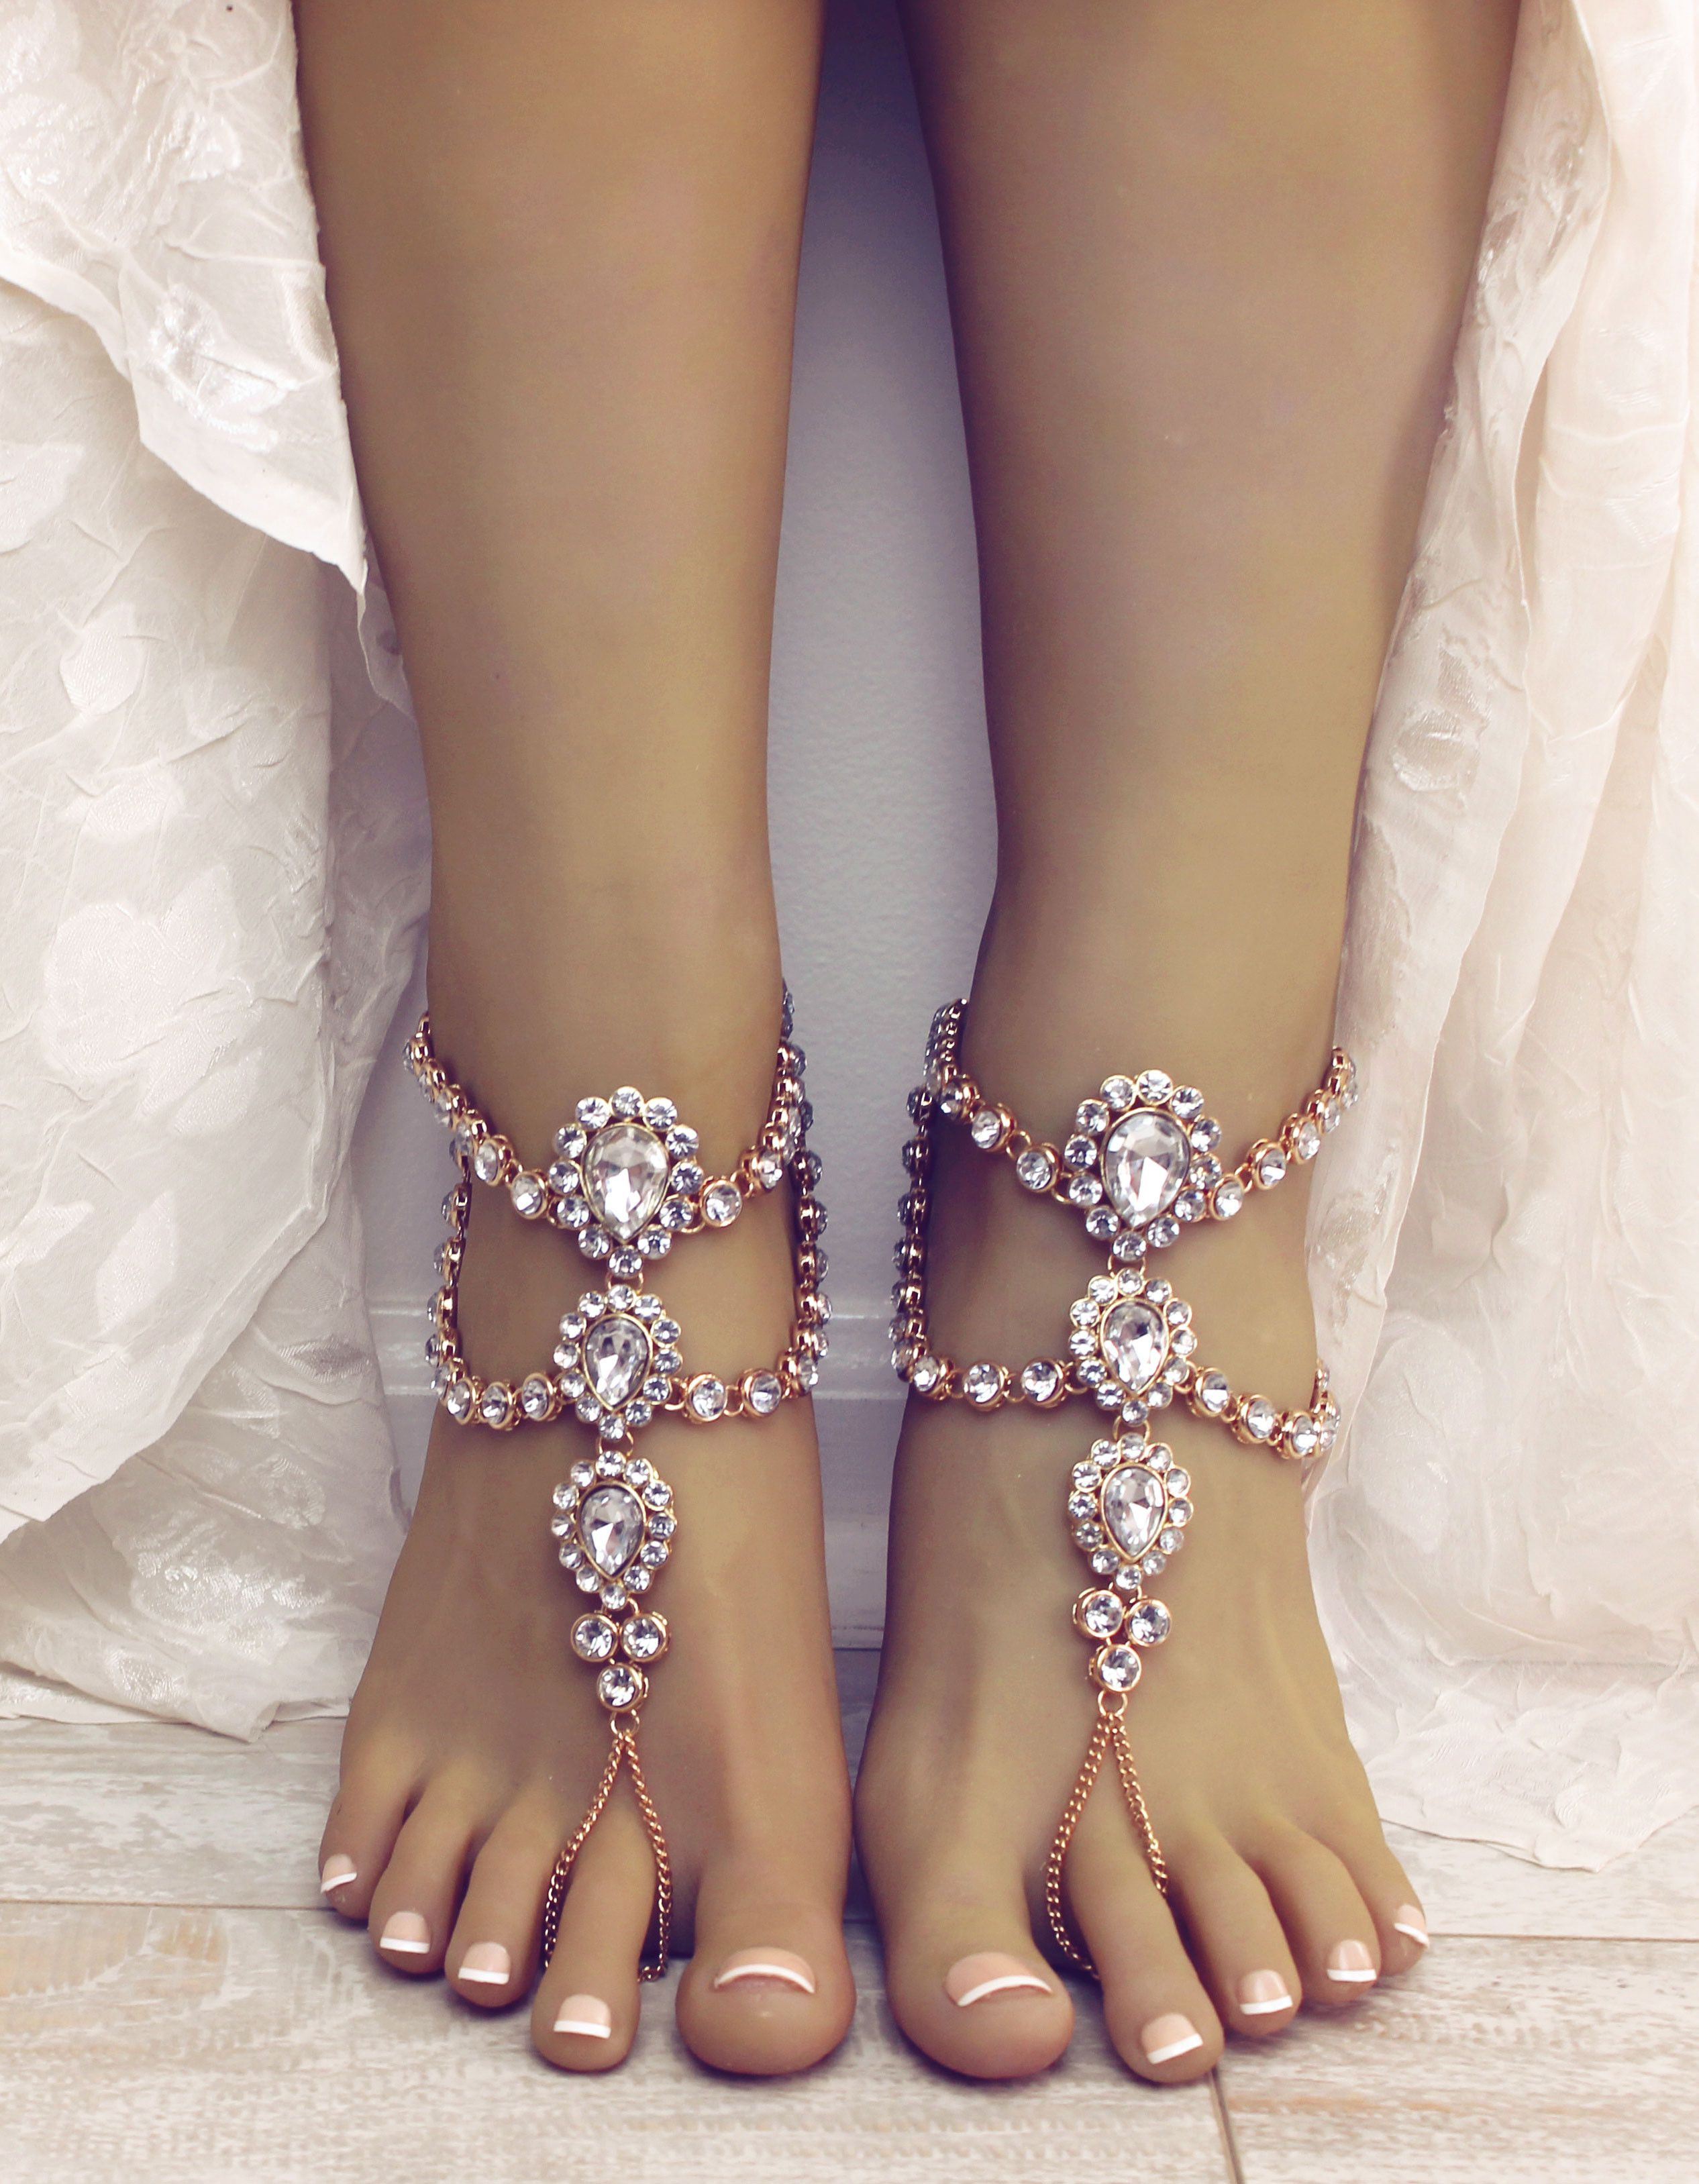 Luna Gold Barefoot Sandals Bare Foot Sandals Foot Jewelry